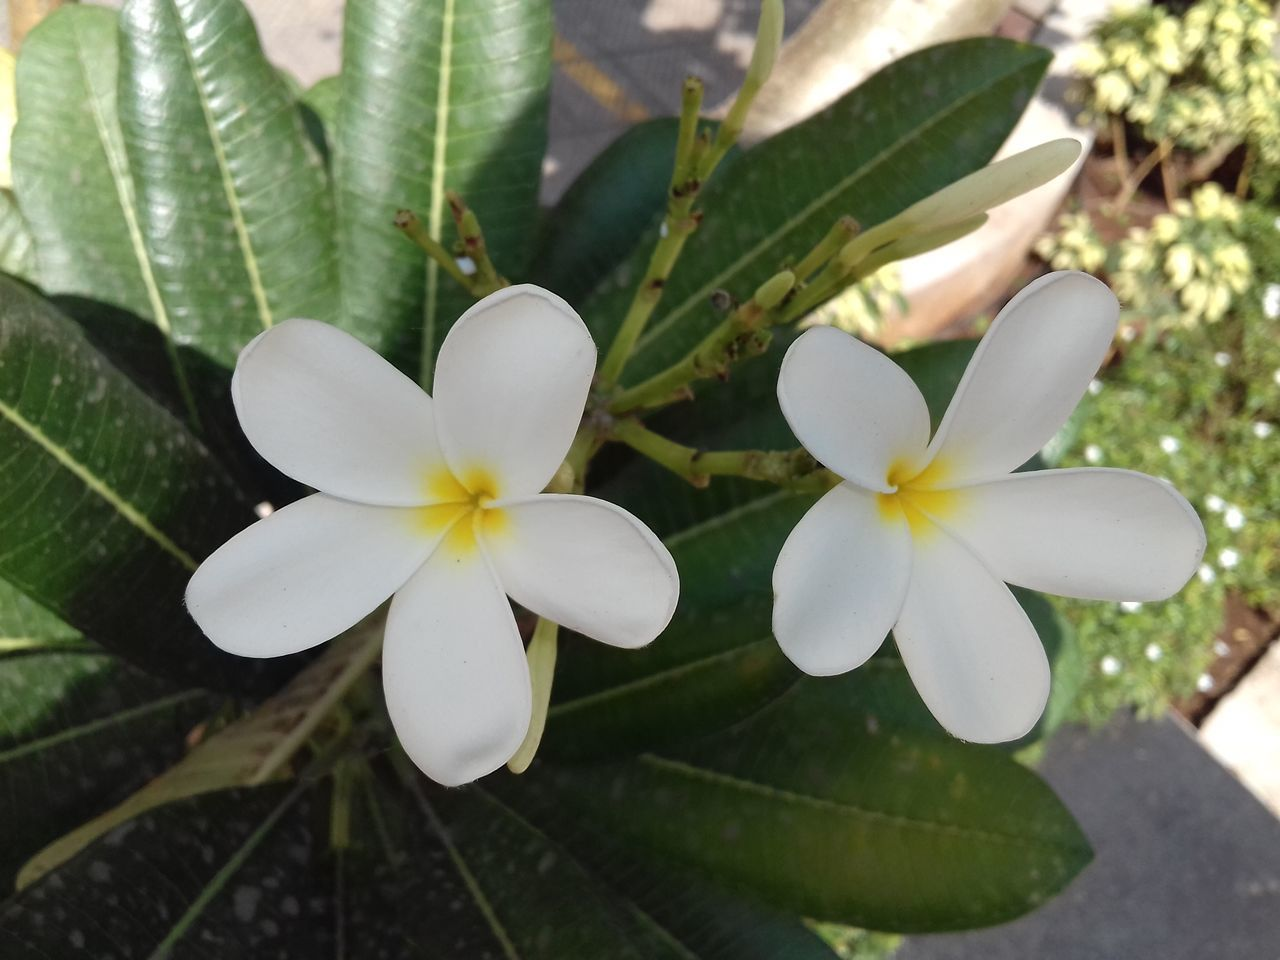 flower, growth, white color, frangipani, petal, beauty in nature, flower head, leaf, periwinkle, fragility, high angle view, plant, nature, day, freshness, outdoors, close-up, no people, blooming